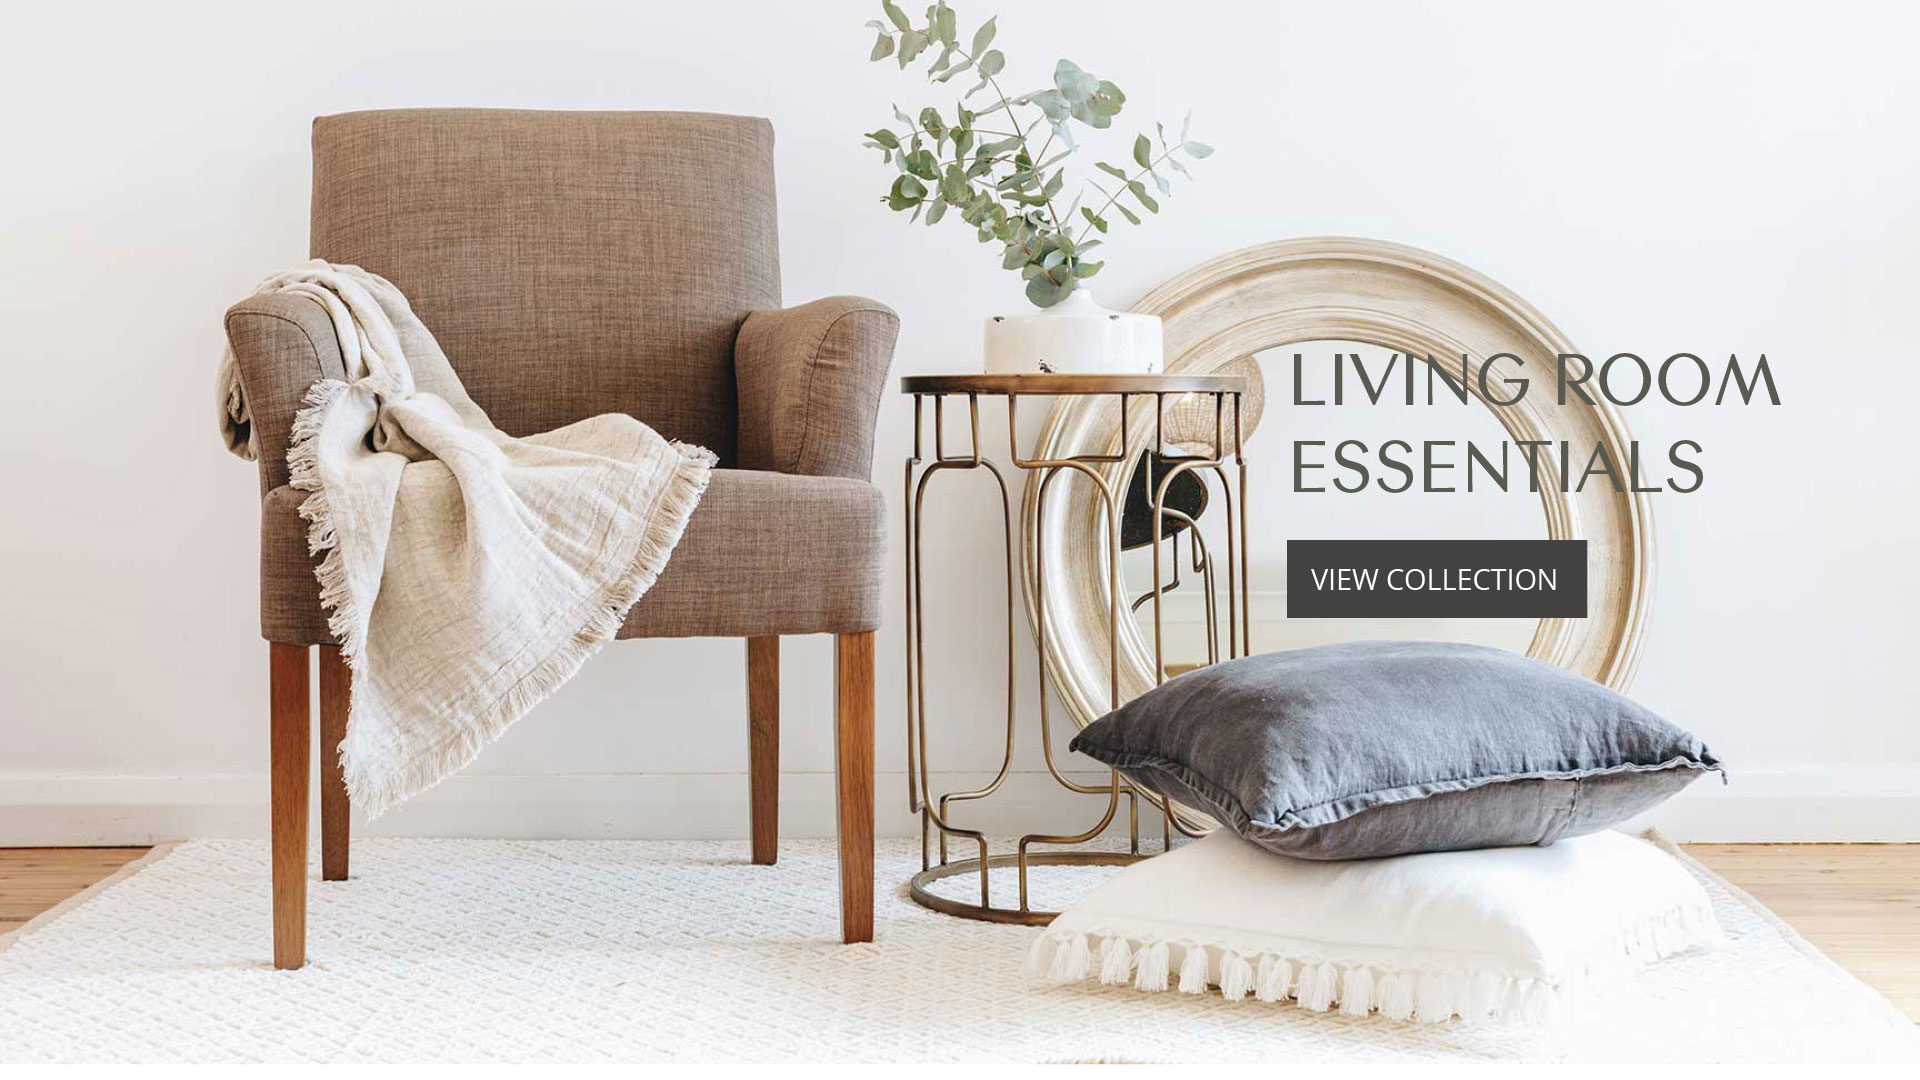 LIVING-ROOM-ESSENTIALS-1